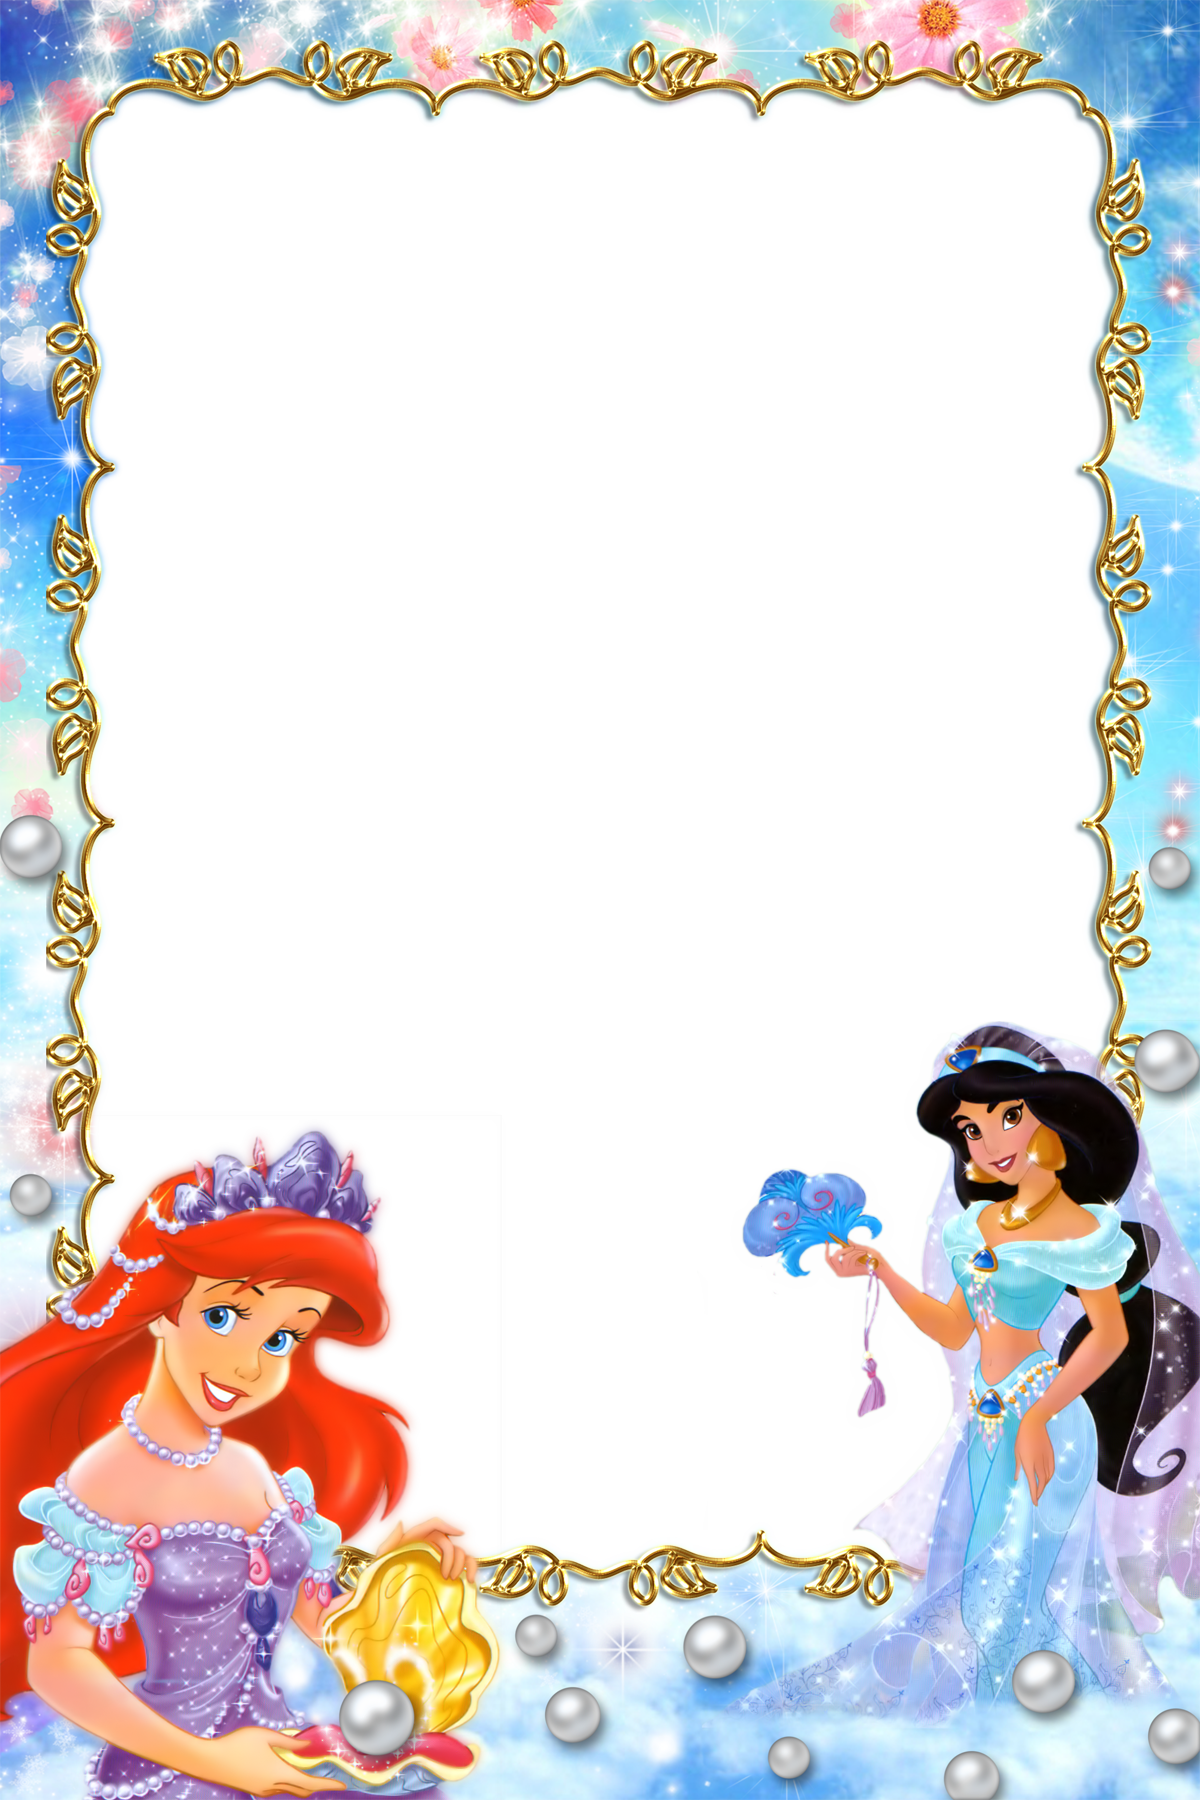 Disney border png. Fav princesses borders and